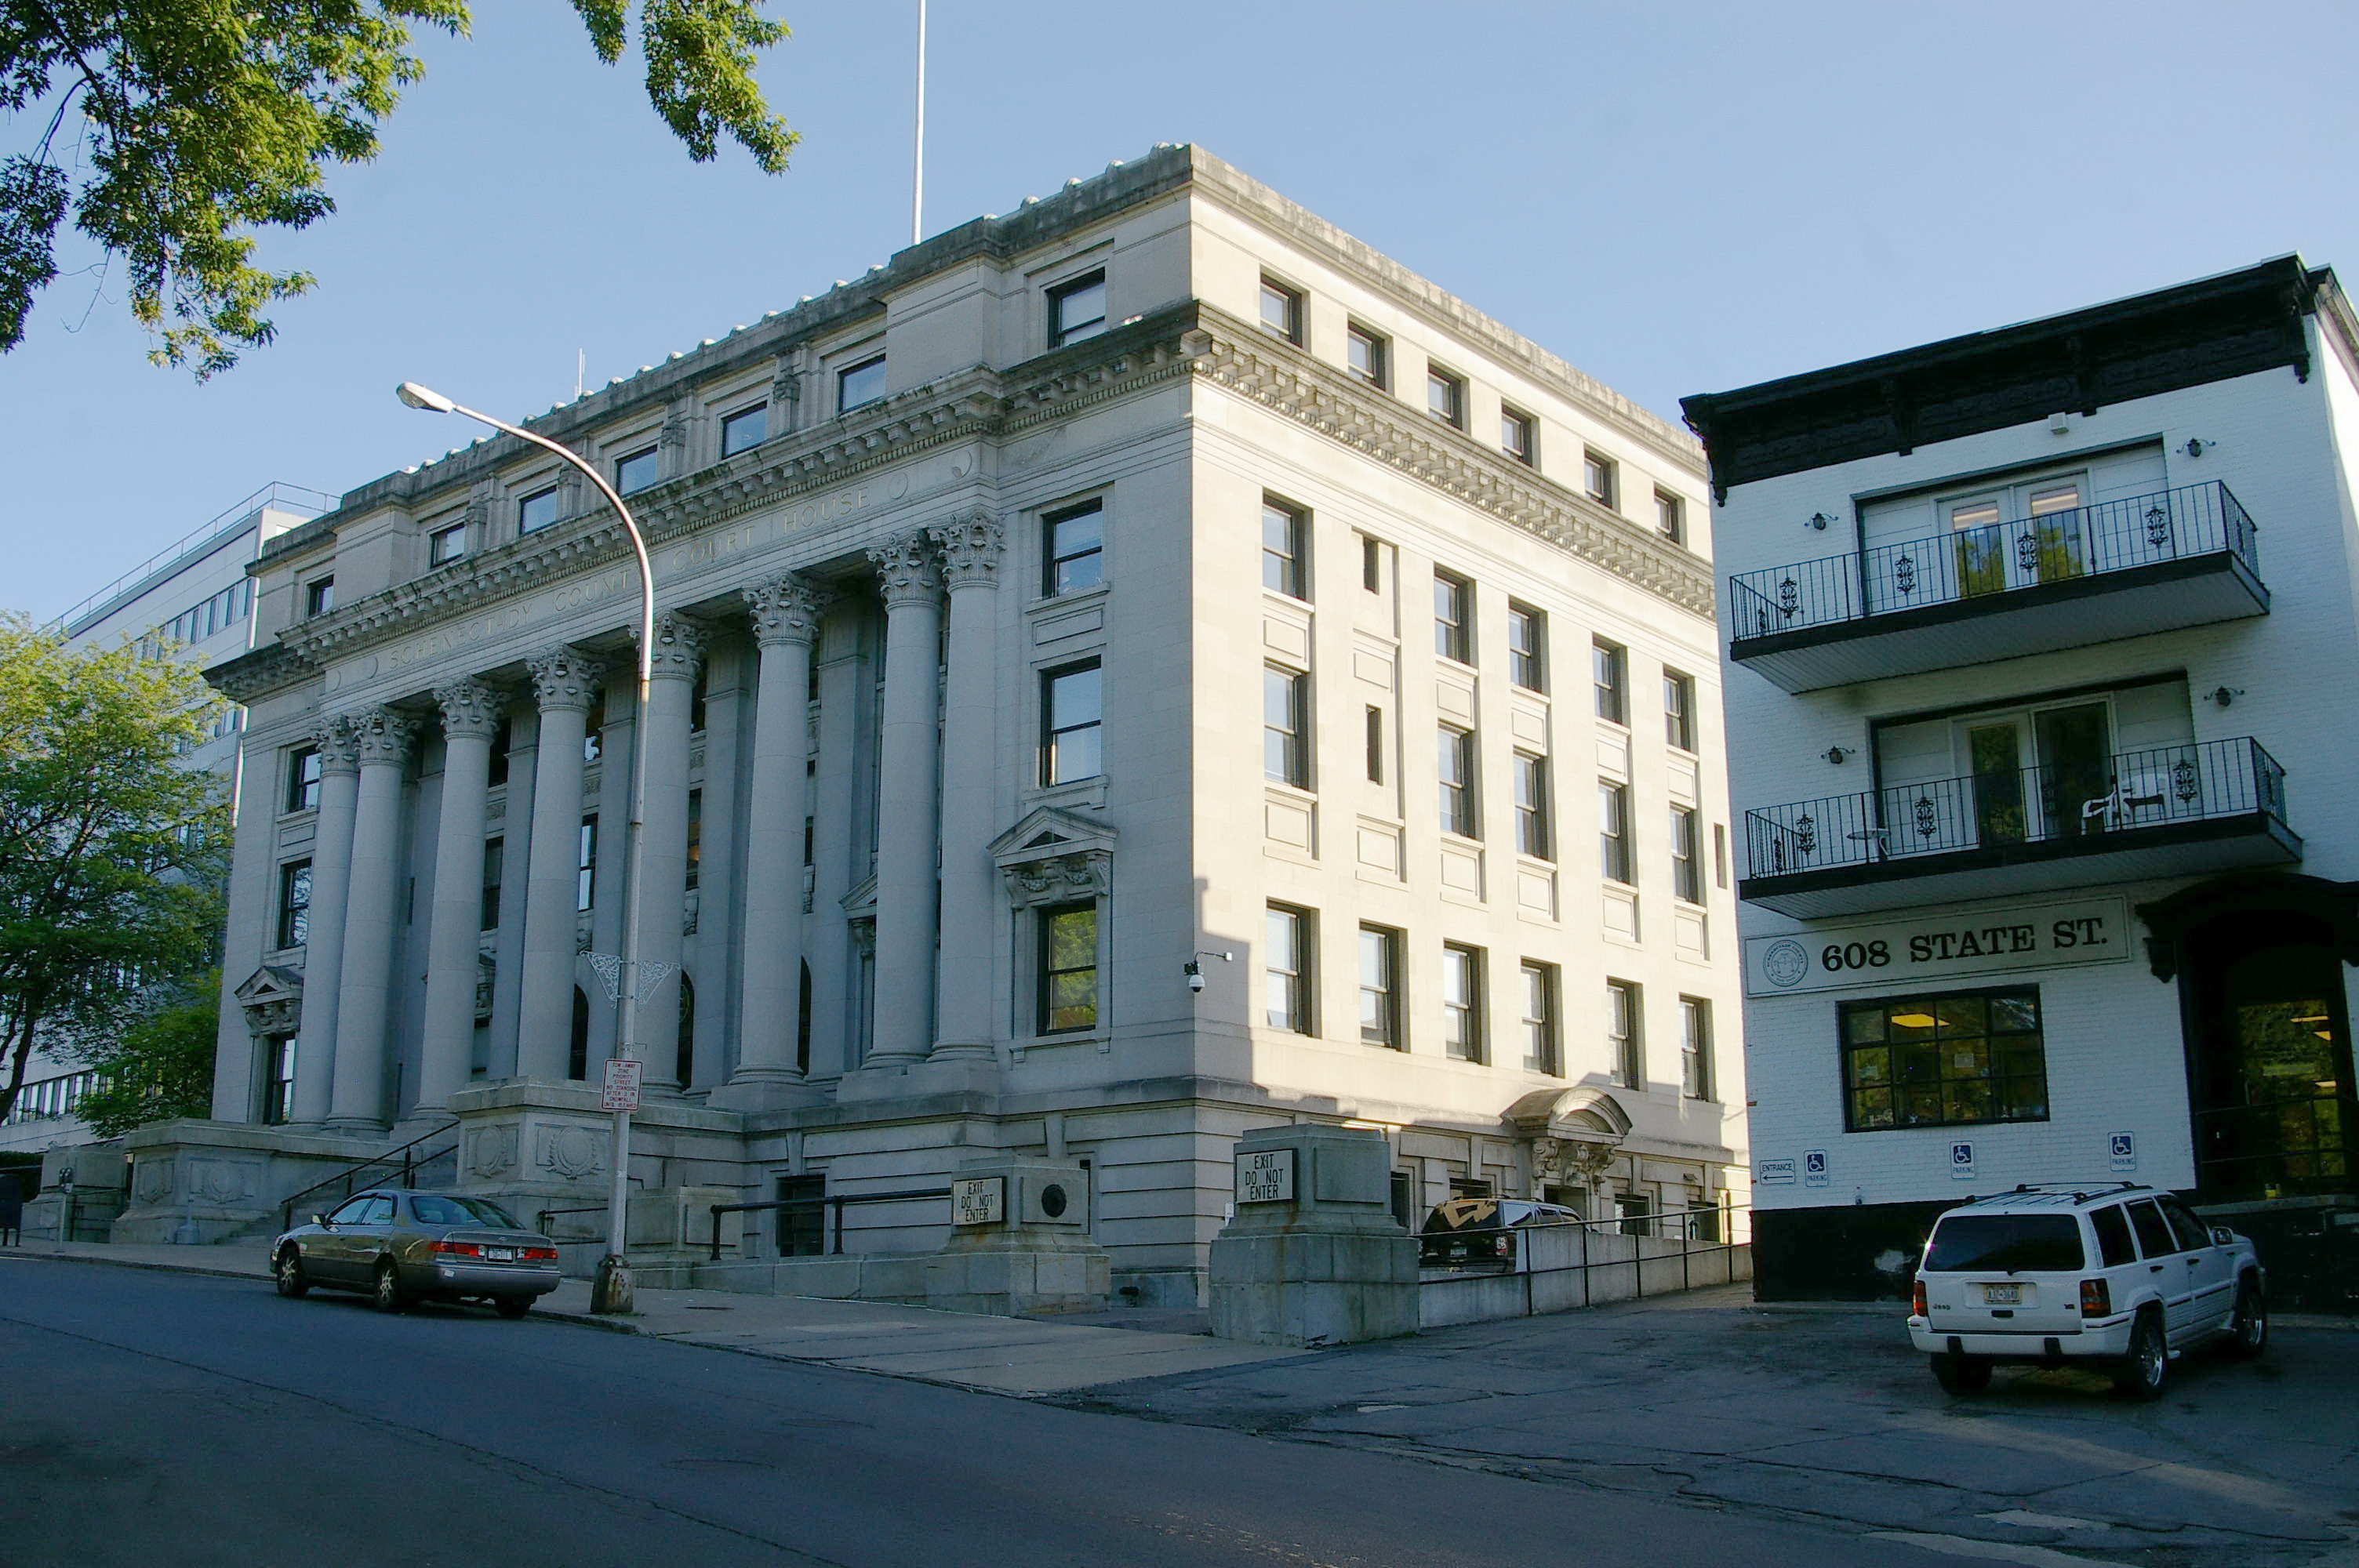 schenectady county 2018-03-12 the mission of the schenectady county public library is to satisfy our community's educational, informational, cultural and recreational needs by providing free and open access to a comprehensive range of materials, services.